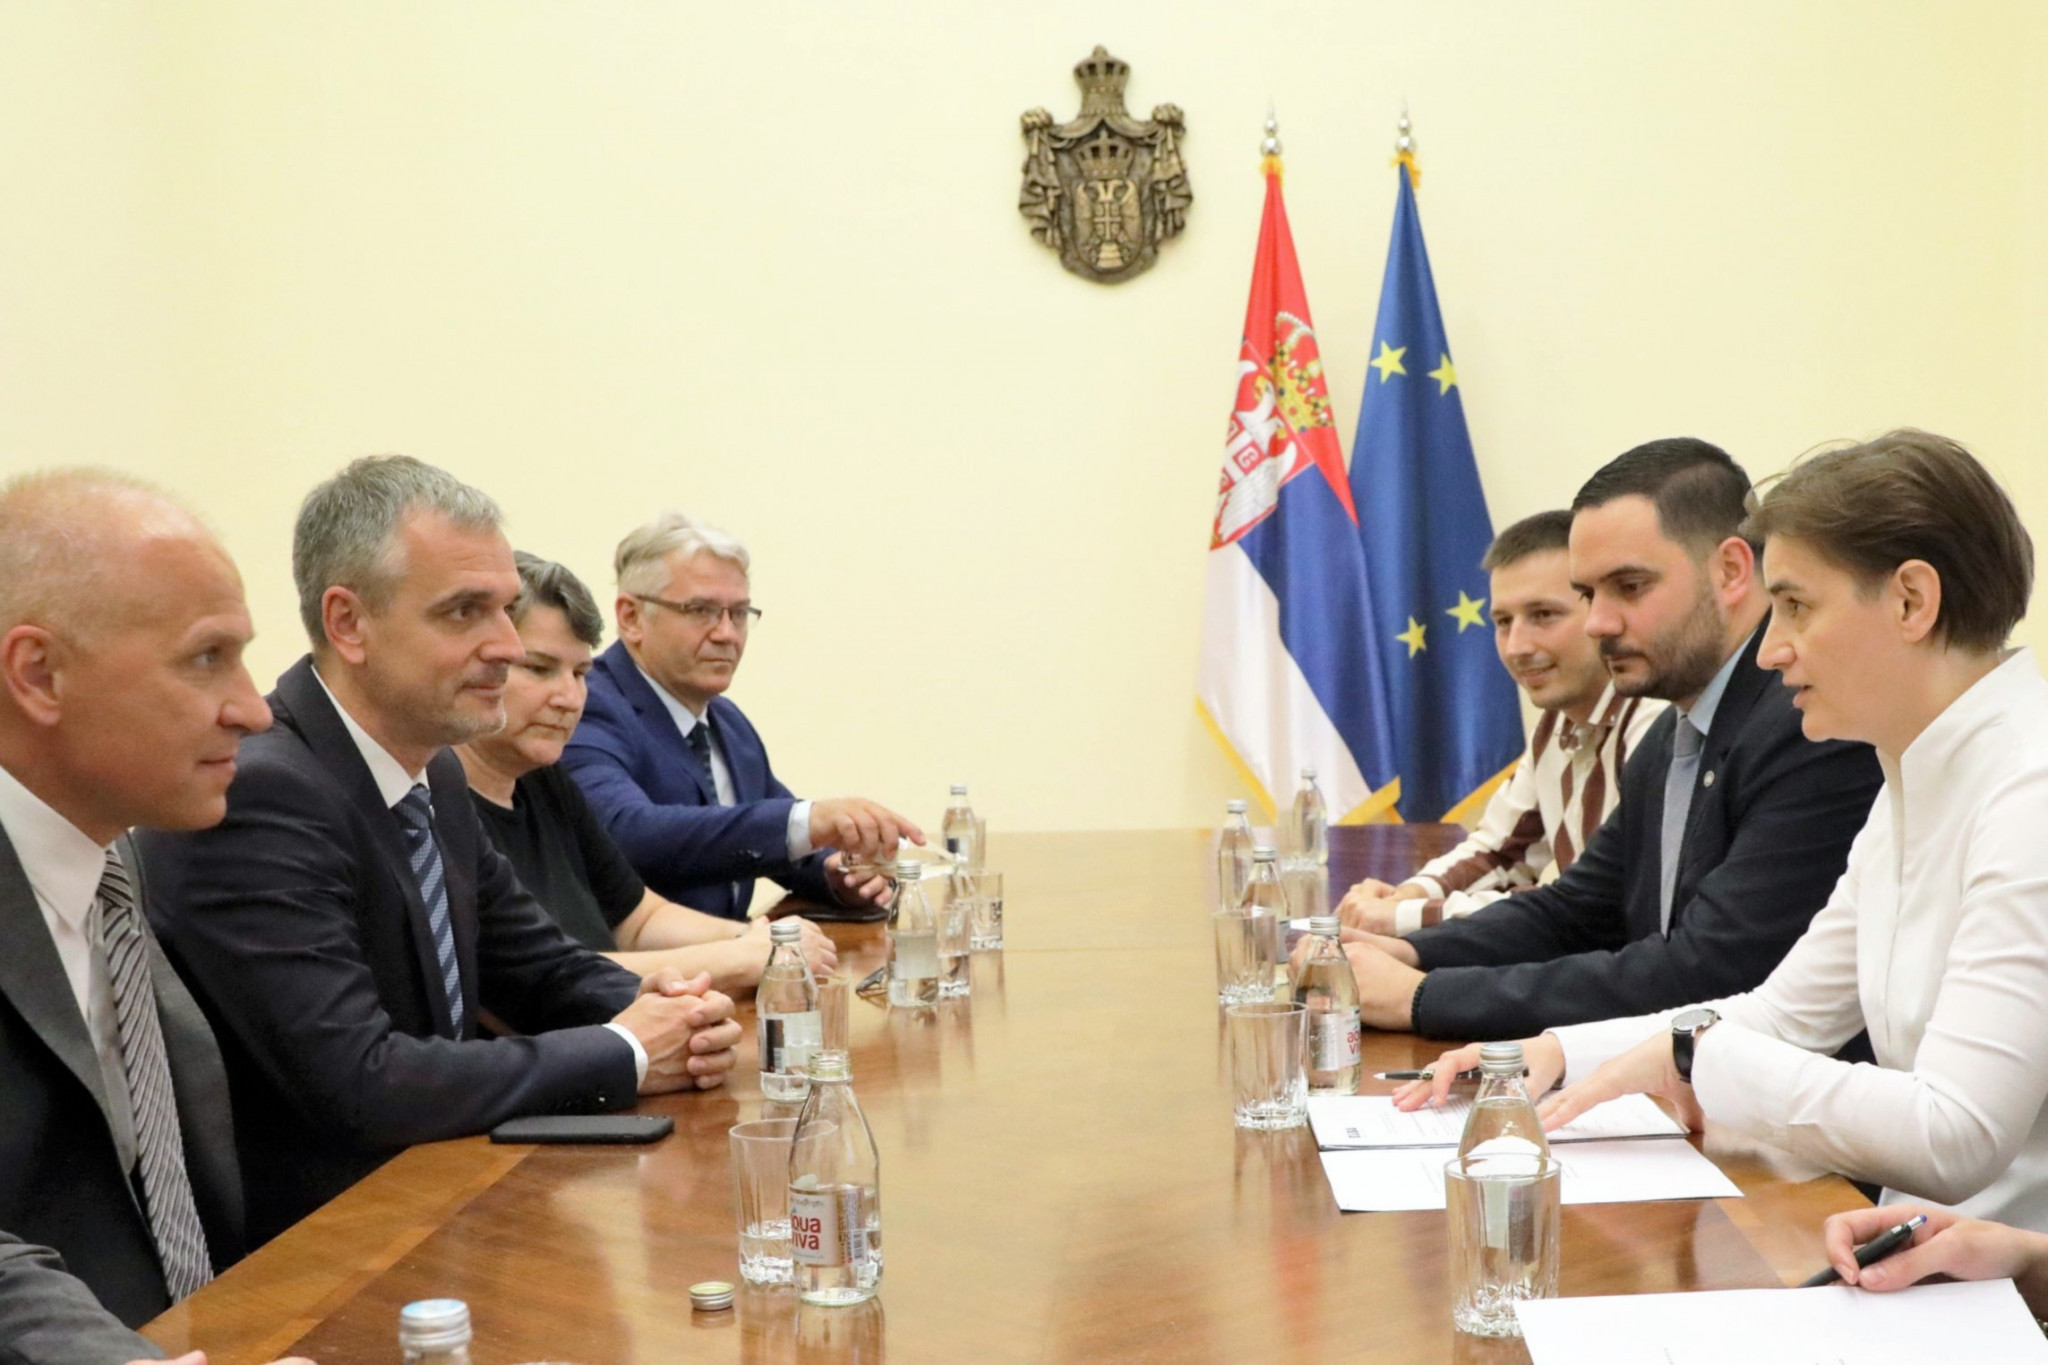 EUSA meet with Serbian Prime Minister ahead of 2020 European Universities Games in Belgrade